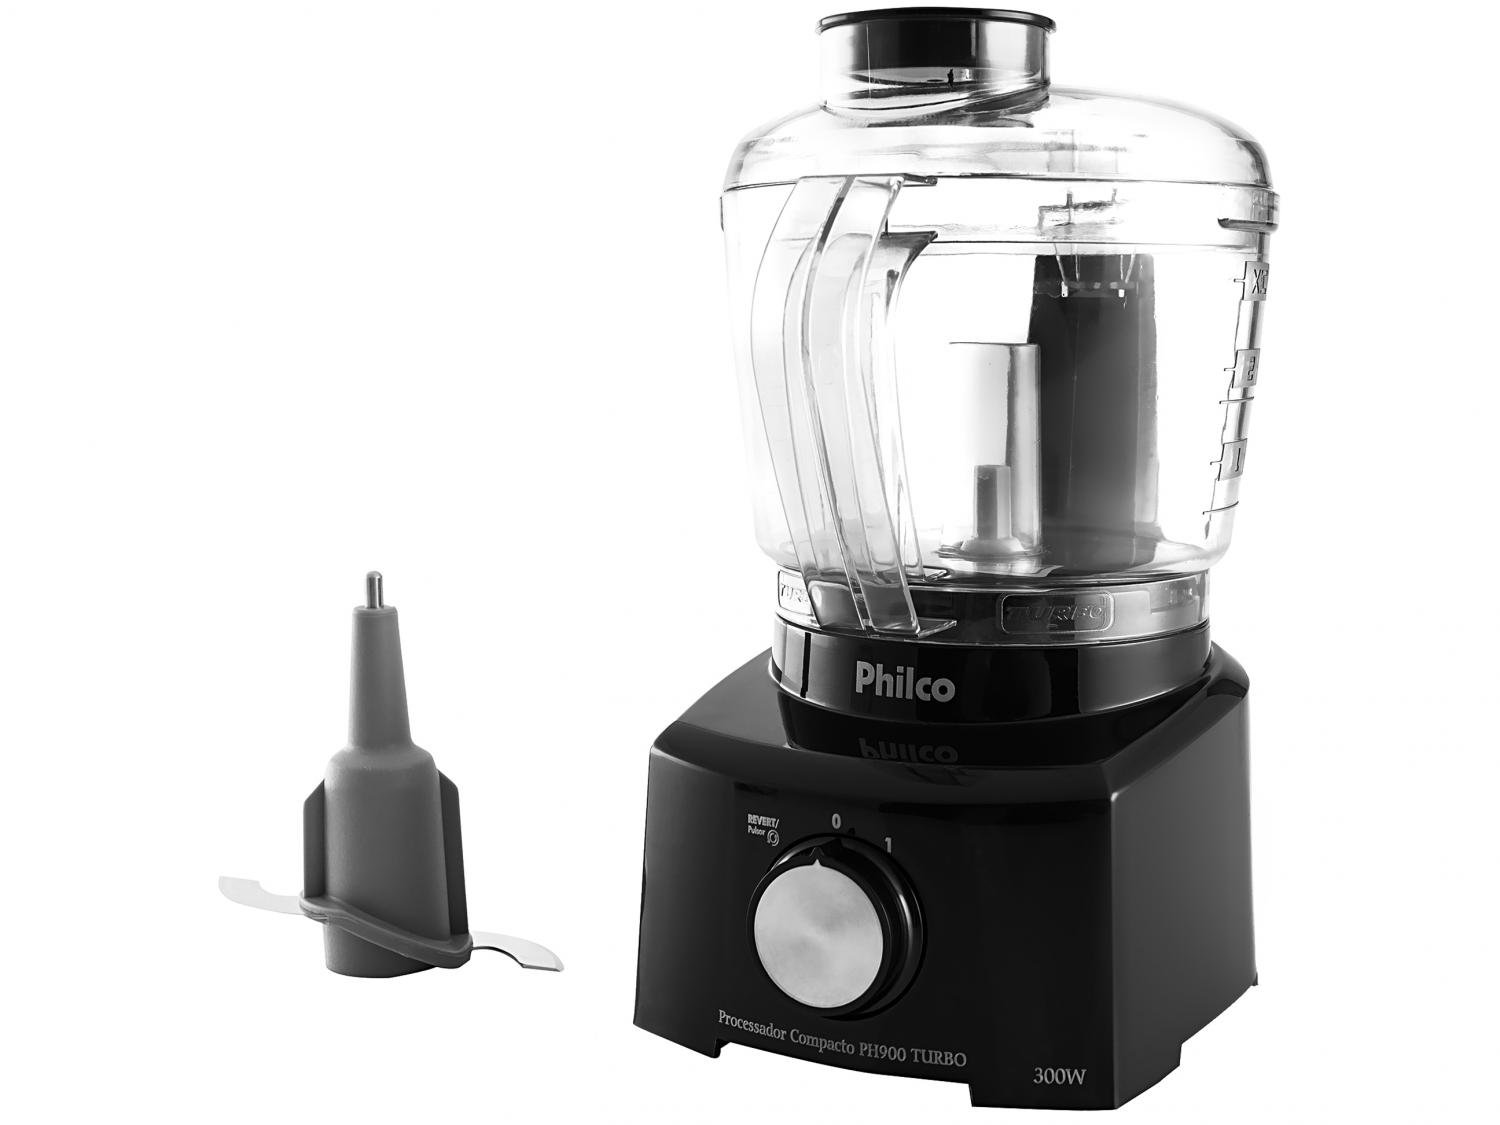 Mini Processador de Alimentos Philco PH900P Turbo 250W – Preto - 110V